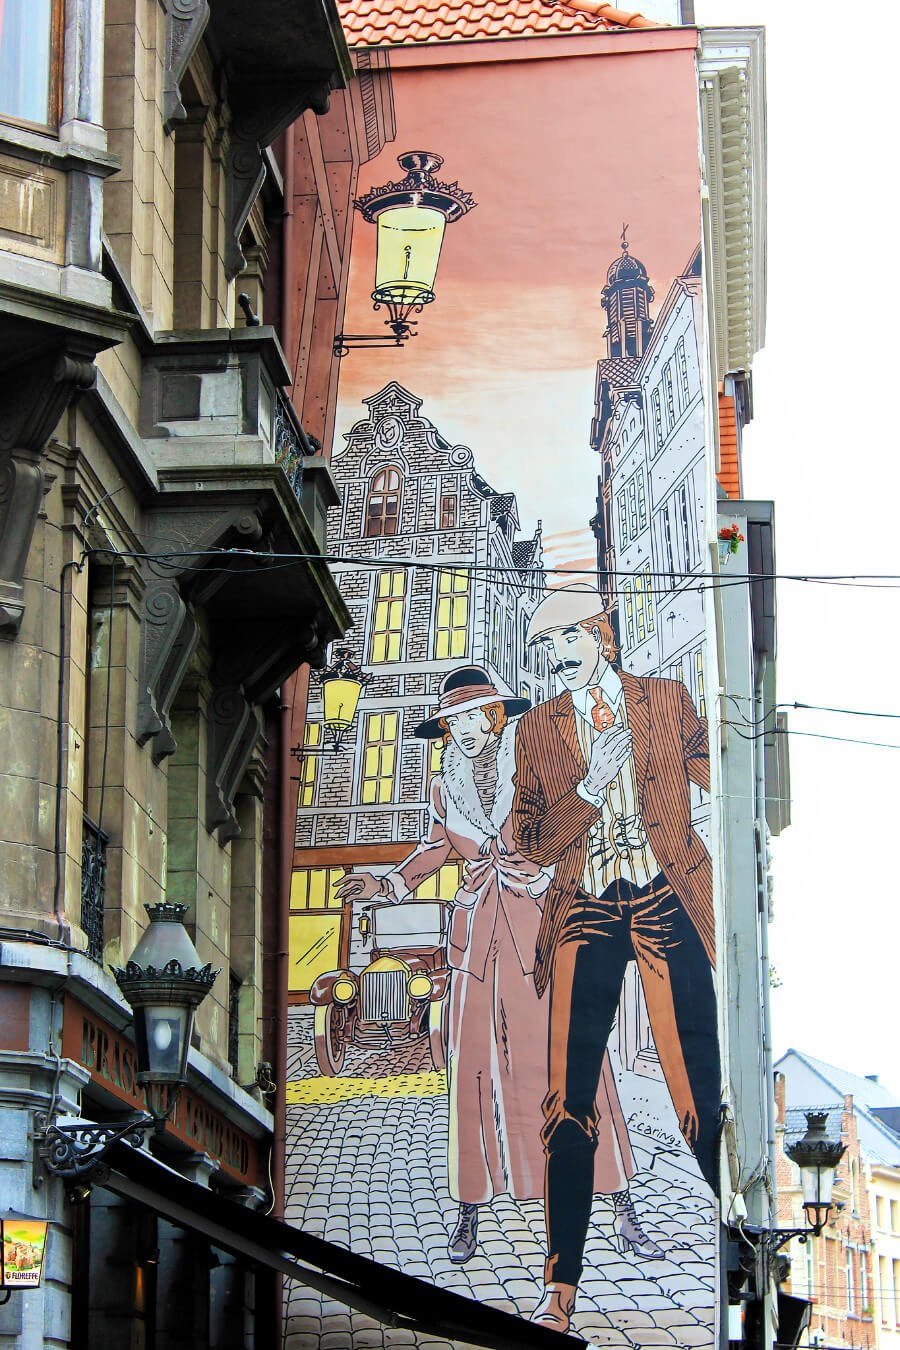 Comic book style street art in Brussels, Belgium